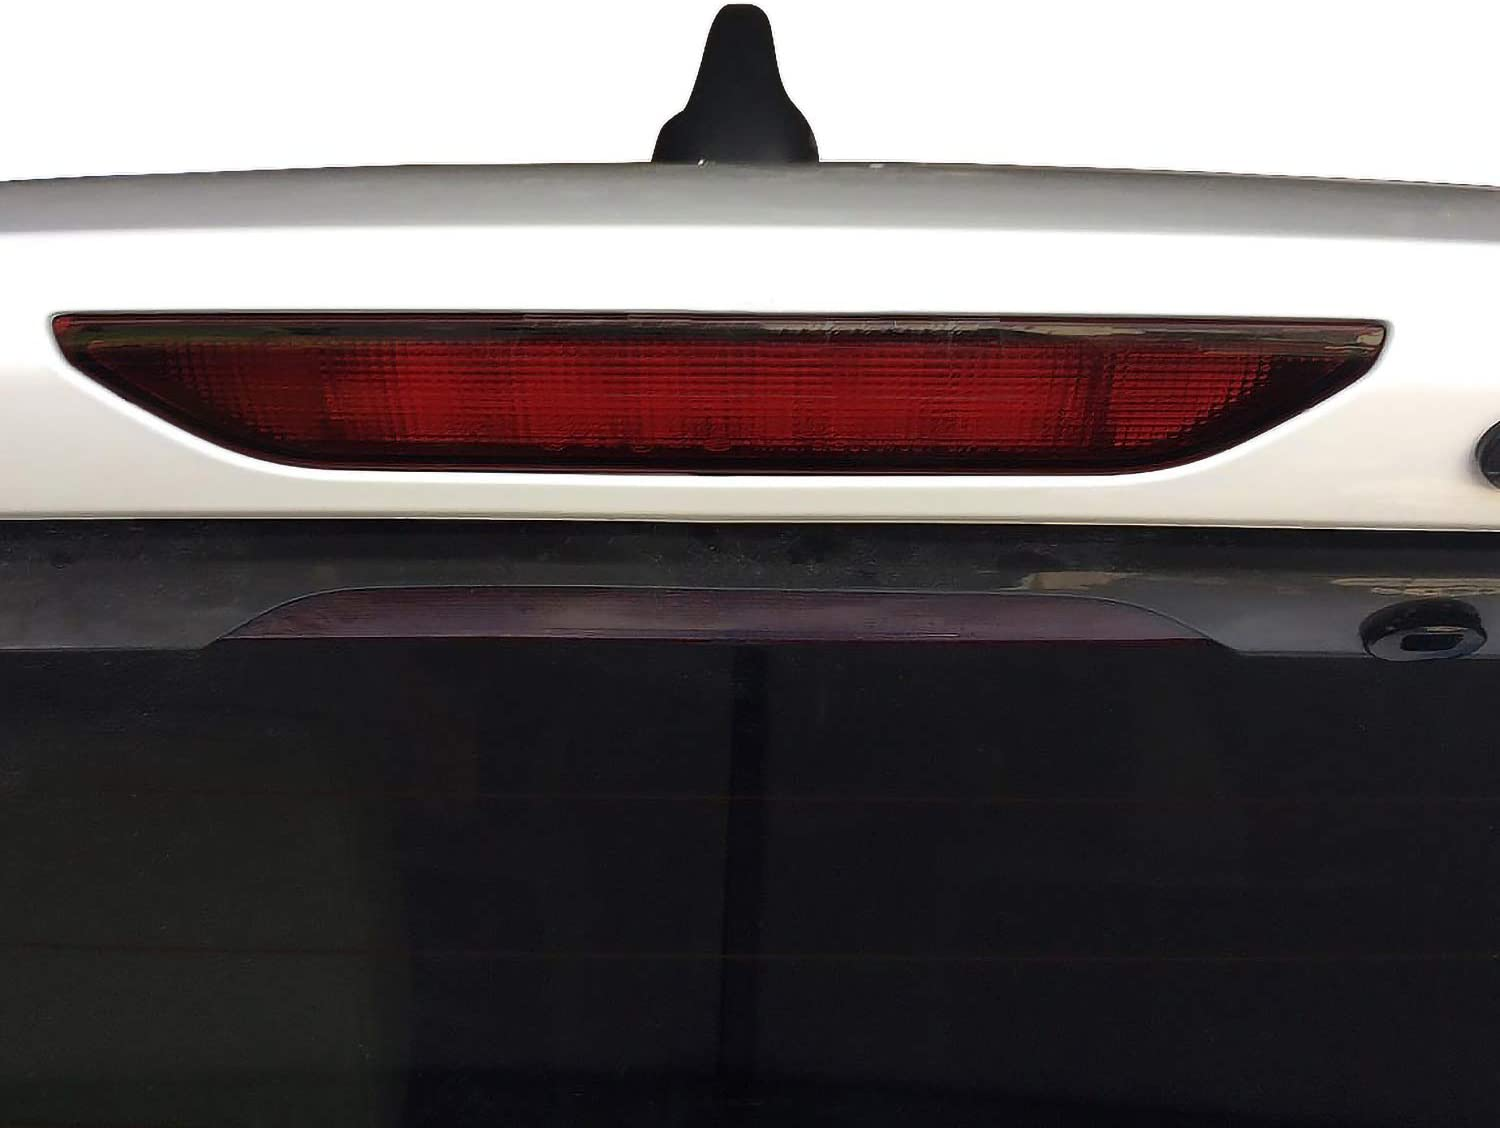 Dark Smoke Bogar Tech Designs Tail Third Brake Light Tint Kit Compatible with and Fits Dodge Durango 2014-2020